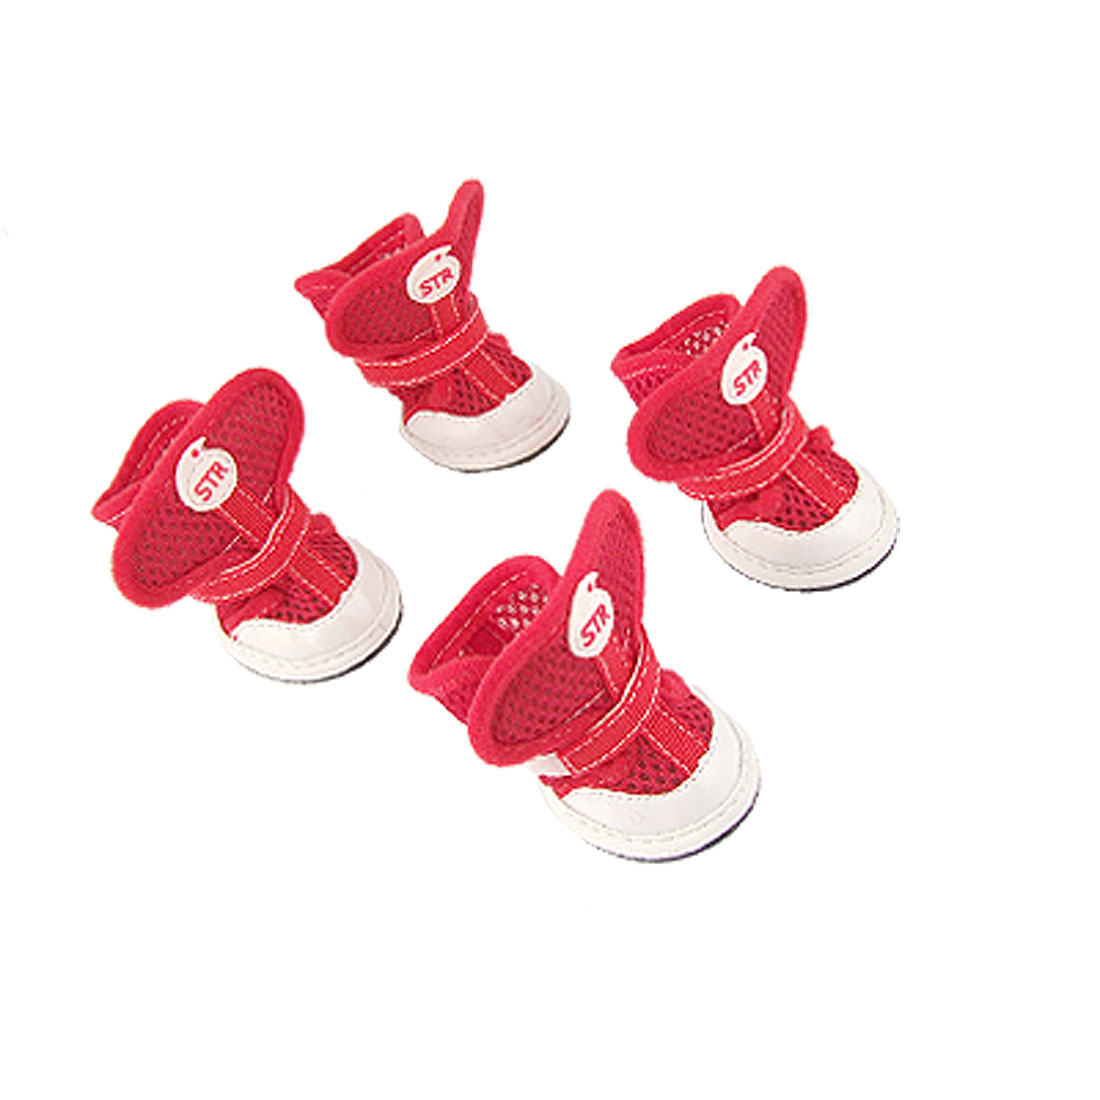 Adjustable Fastener Nonslip Rubber Sole Red Air Mesh Shoes for Dog 2